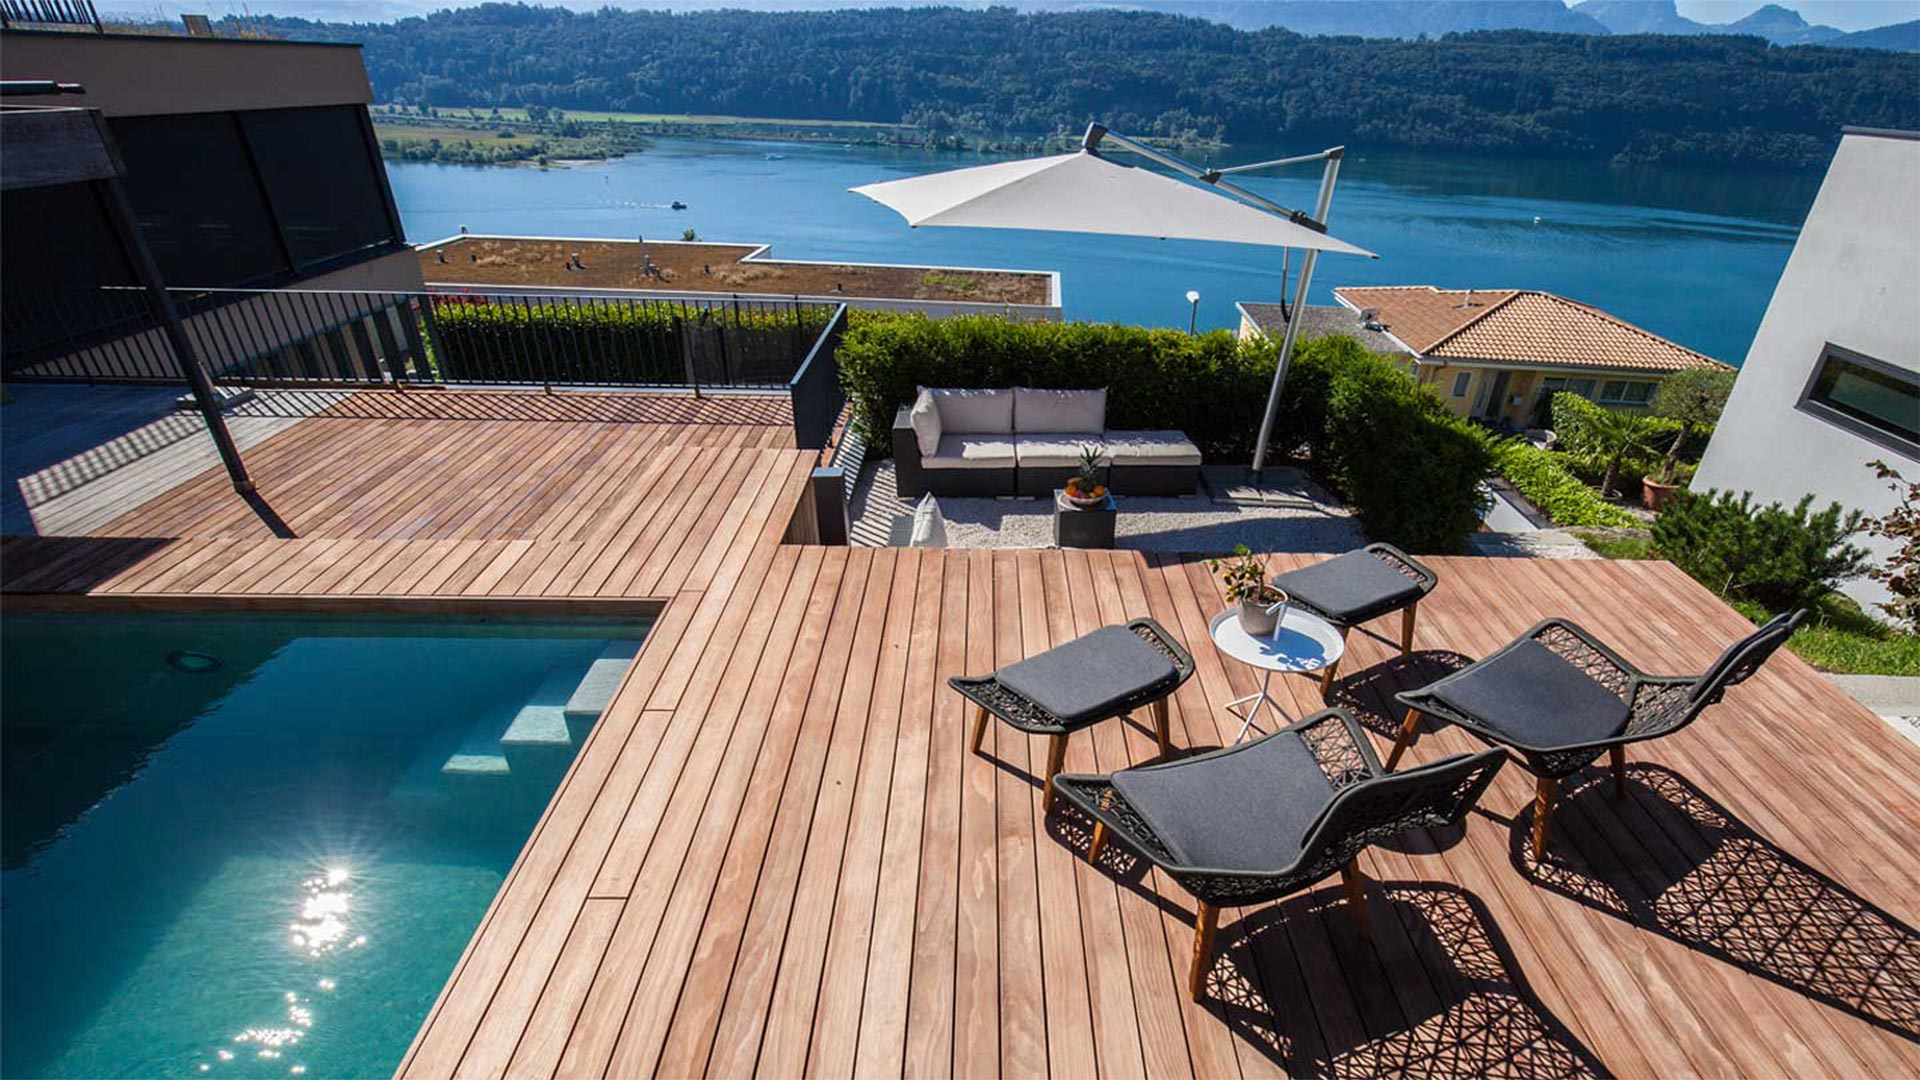 Terrace design and sun protection by Zweifel Terrazza AG